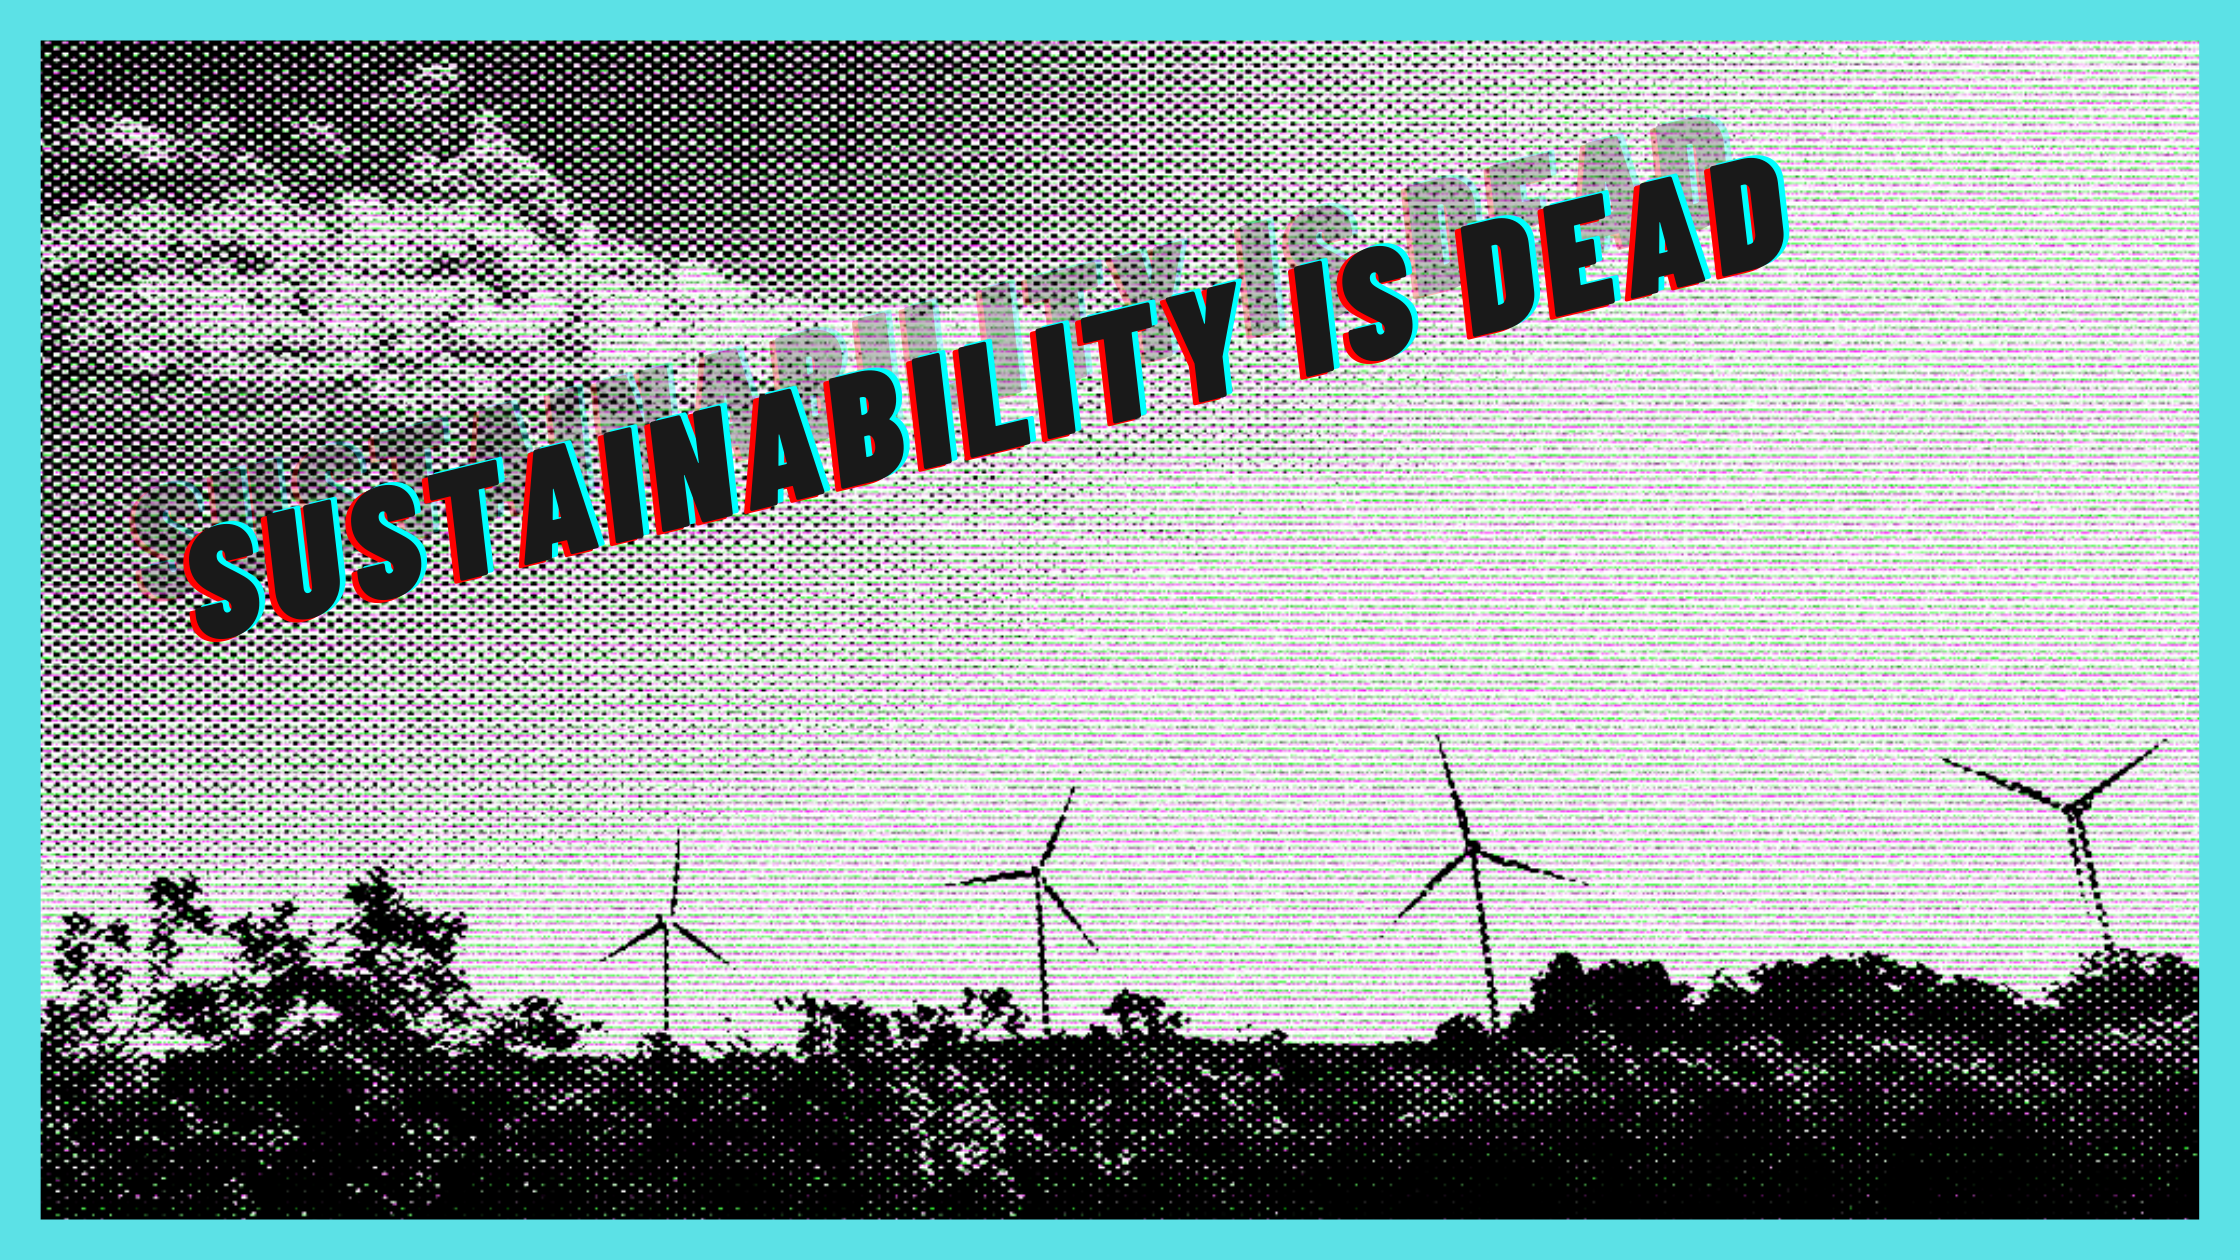 The words 'sustainability is dead' are overlayed on top of windmills and trees. The image has a grainy, retro filter applied.